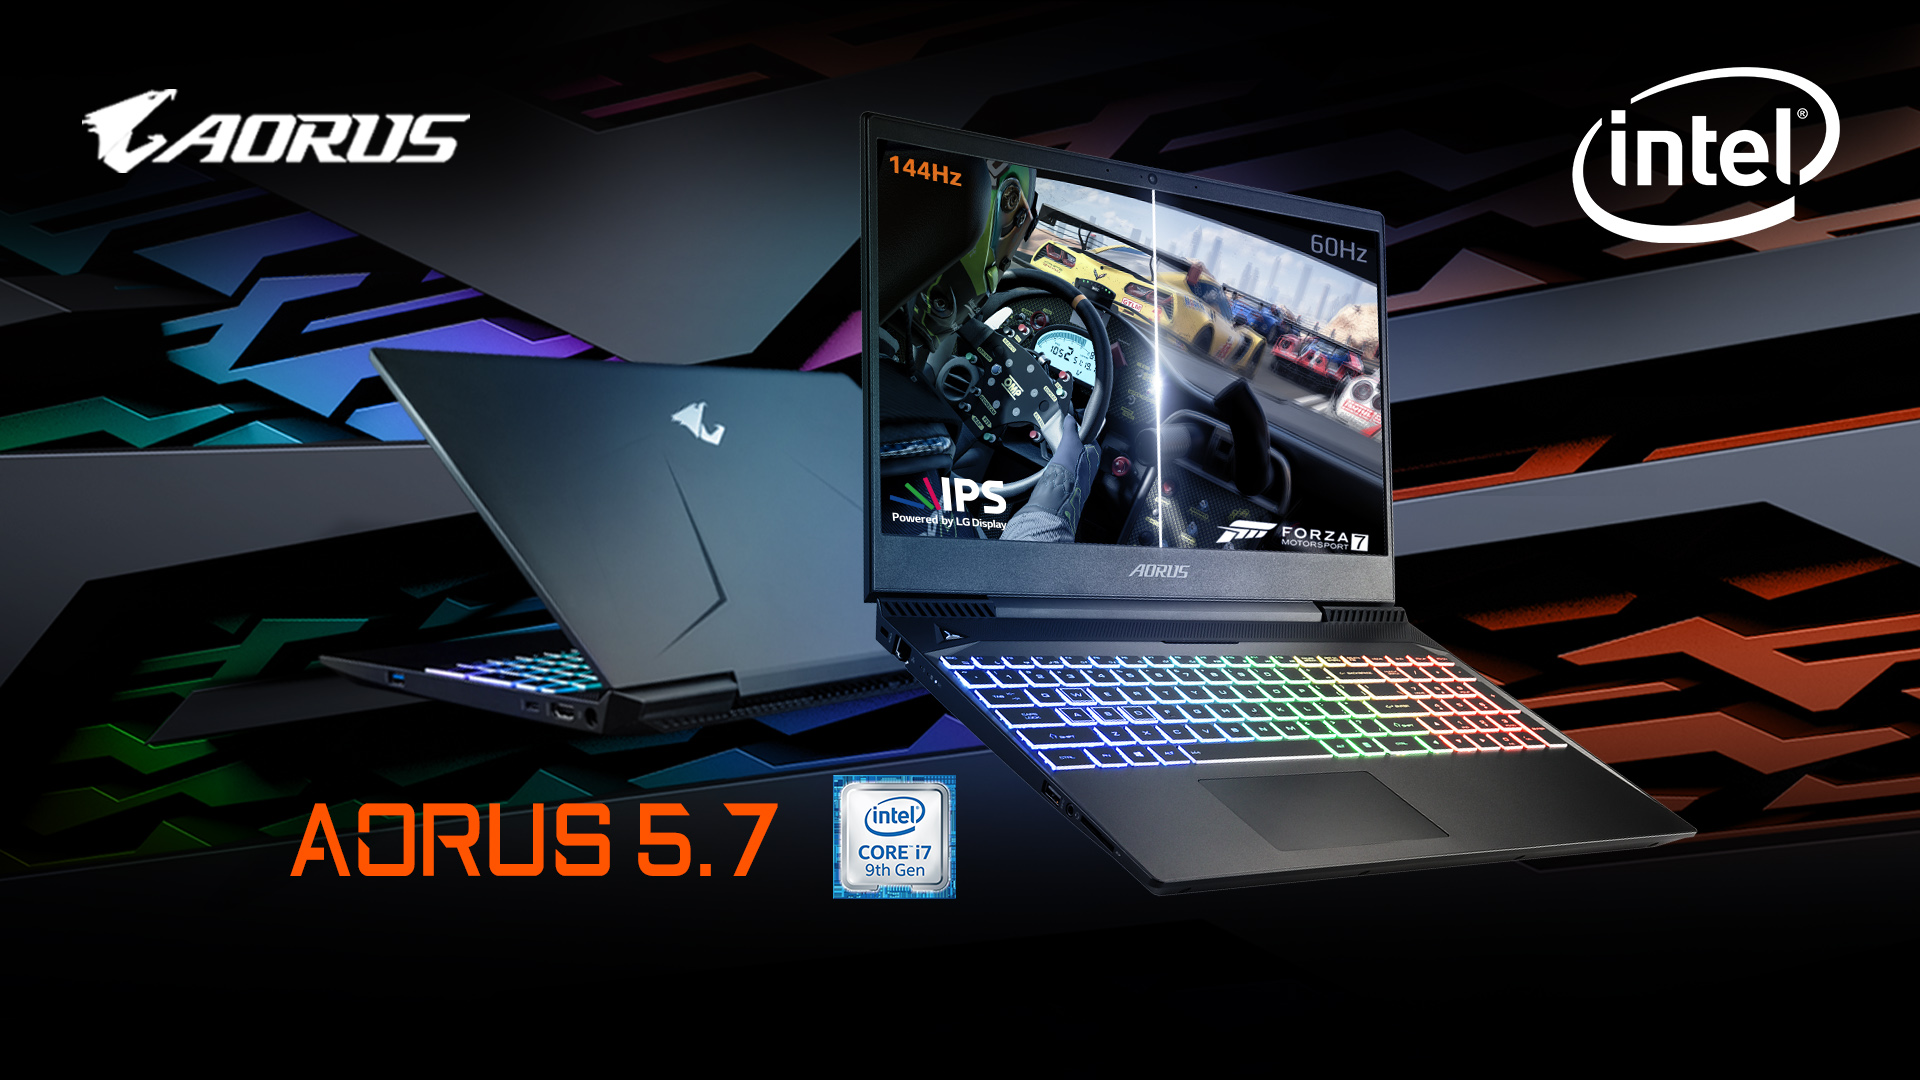 Buying a mid-range gaming laptop? Here's what you should look for